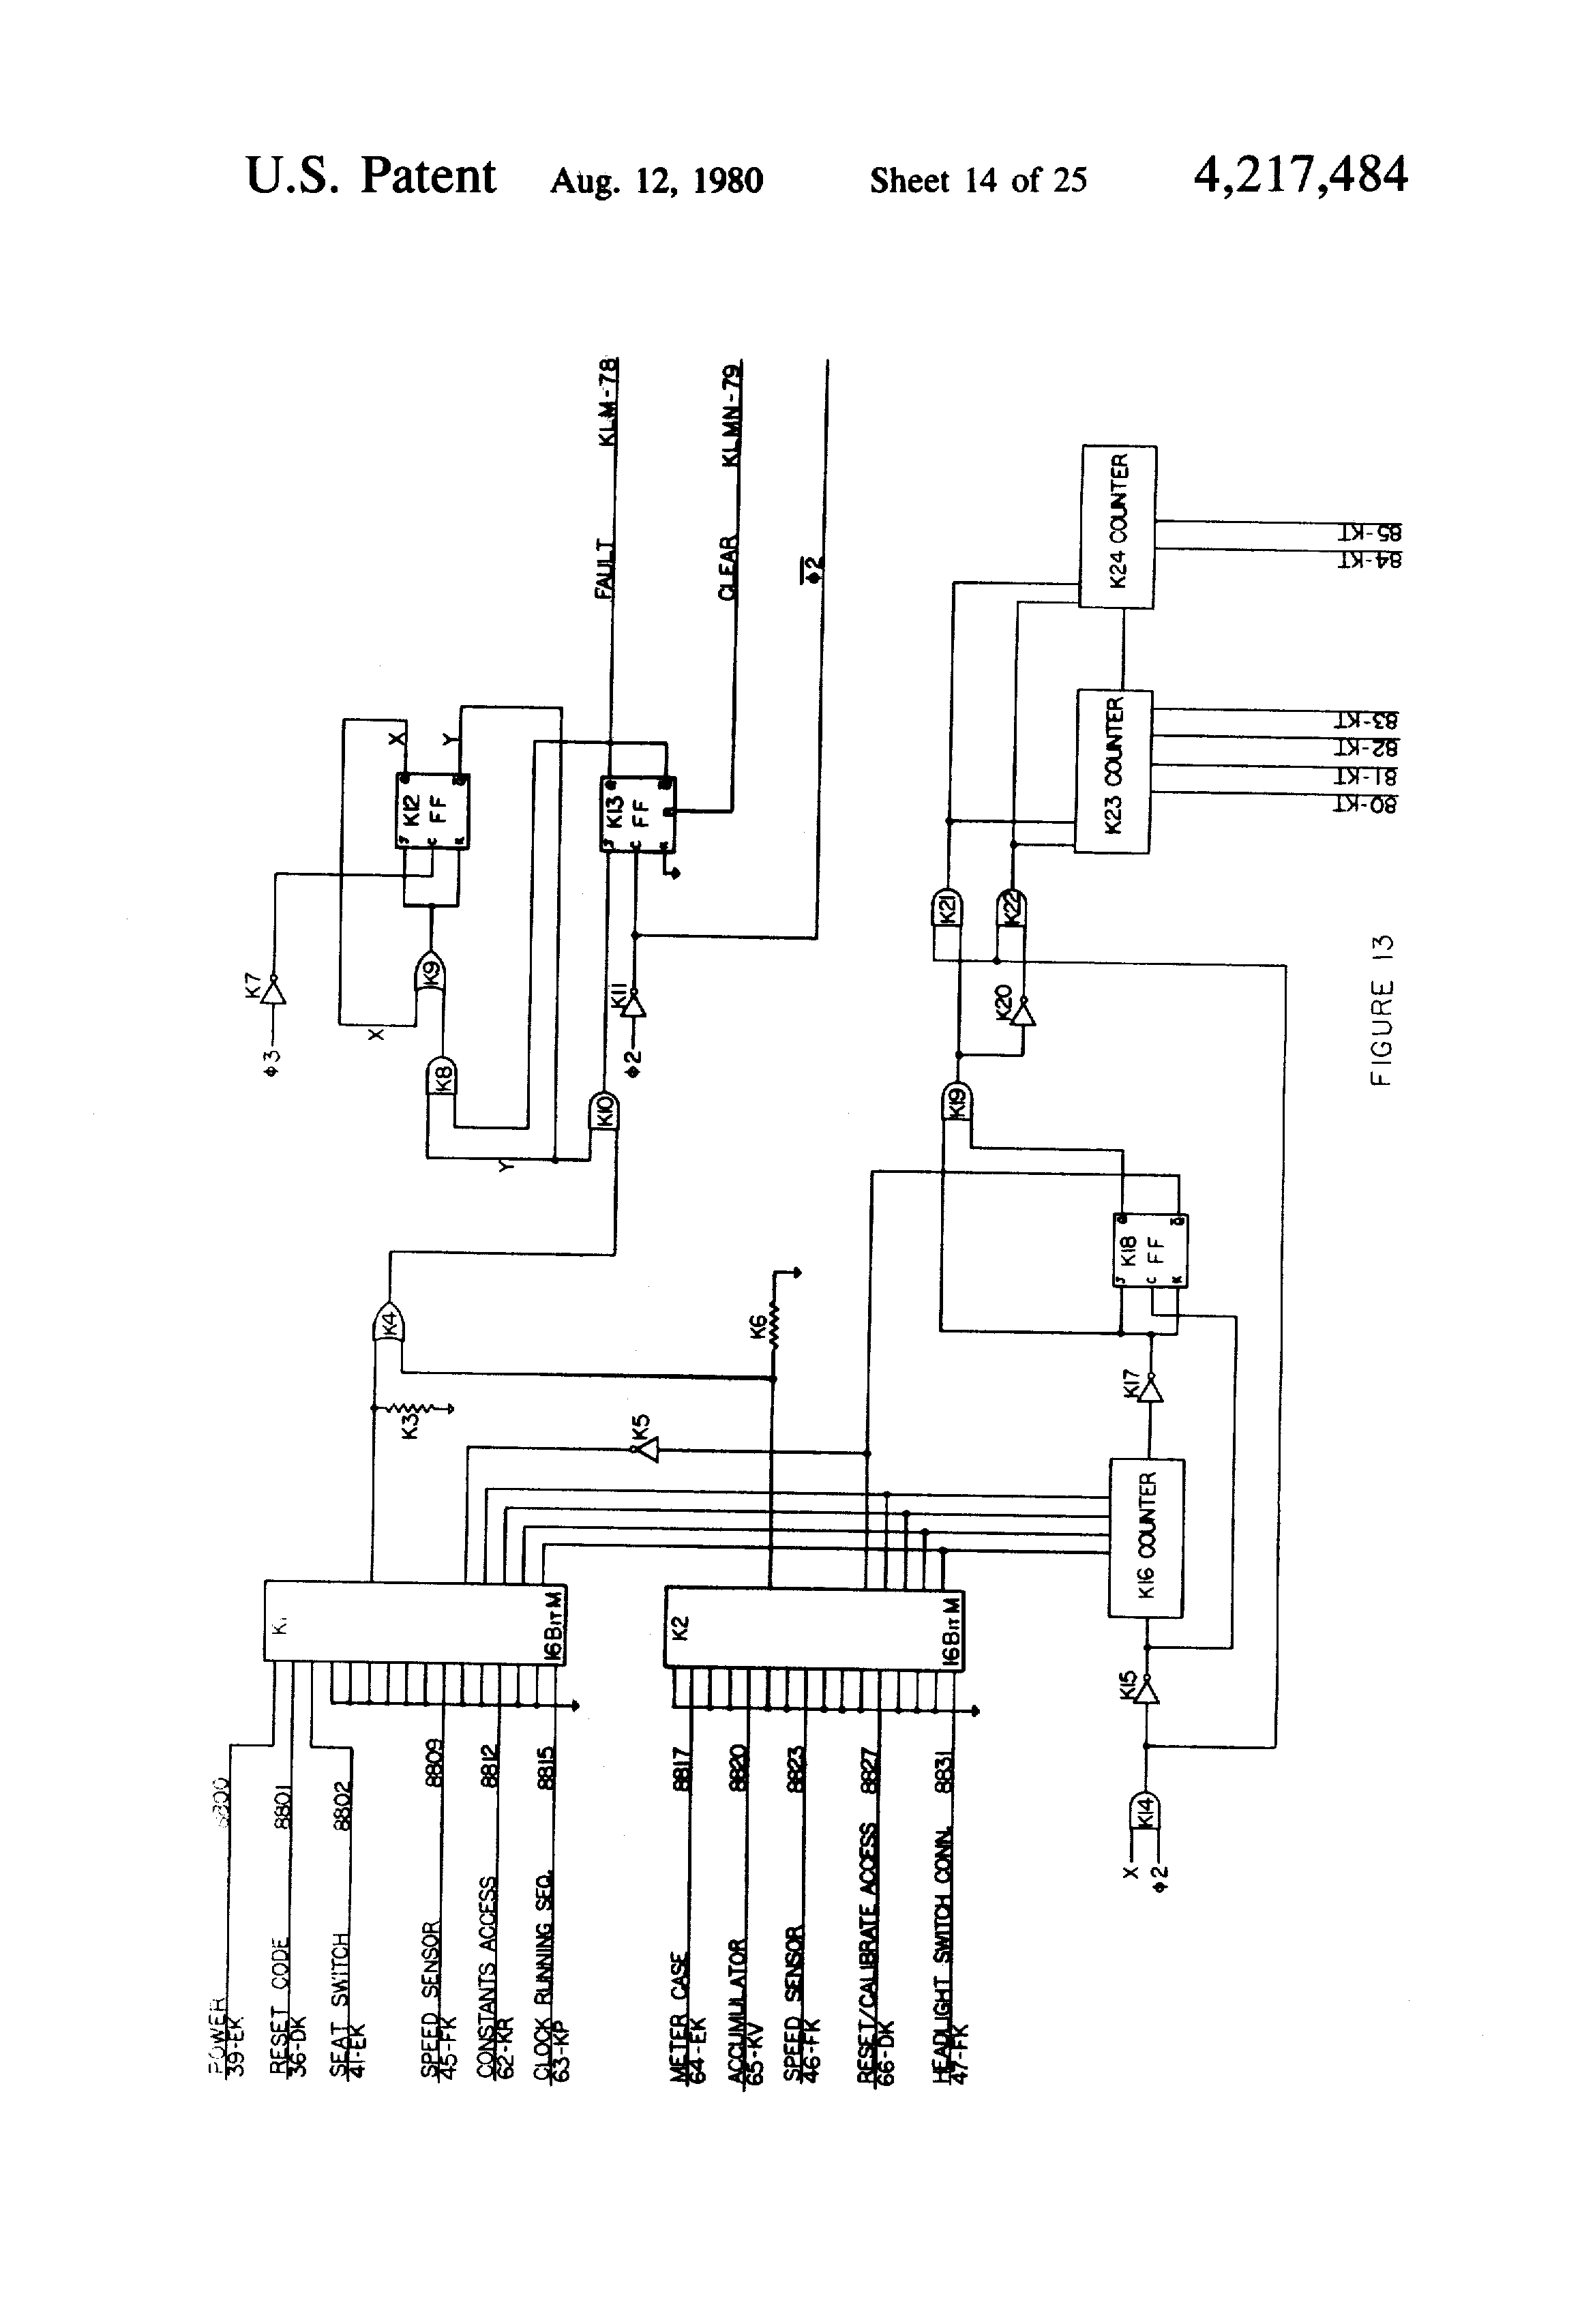 US4217484 14 patent us4217484 taximeter google patents warrick controls wiring diagrams at gsmx.co